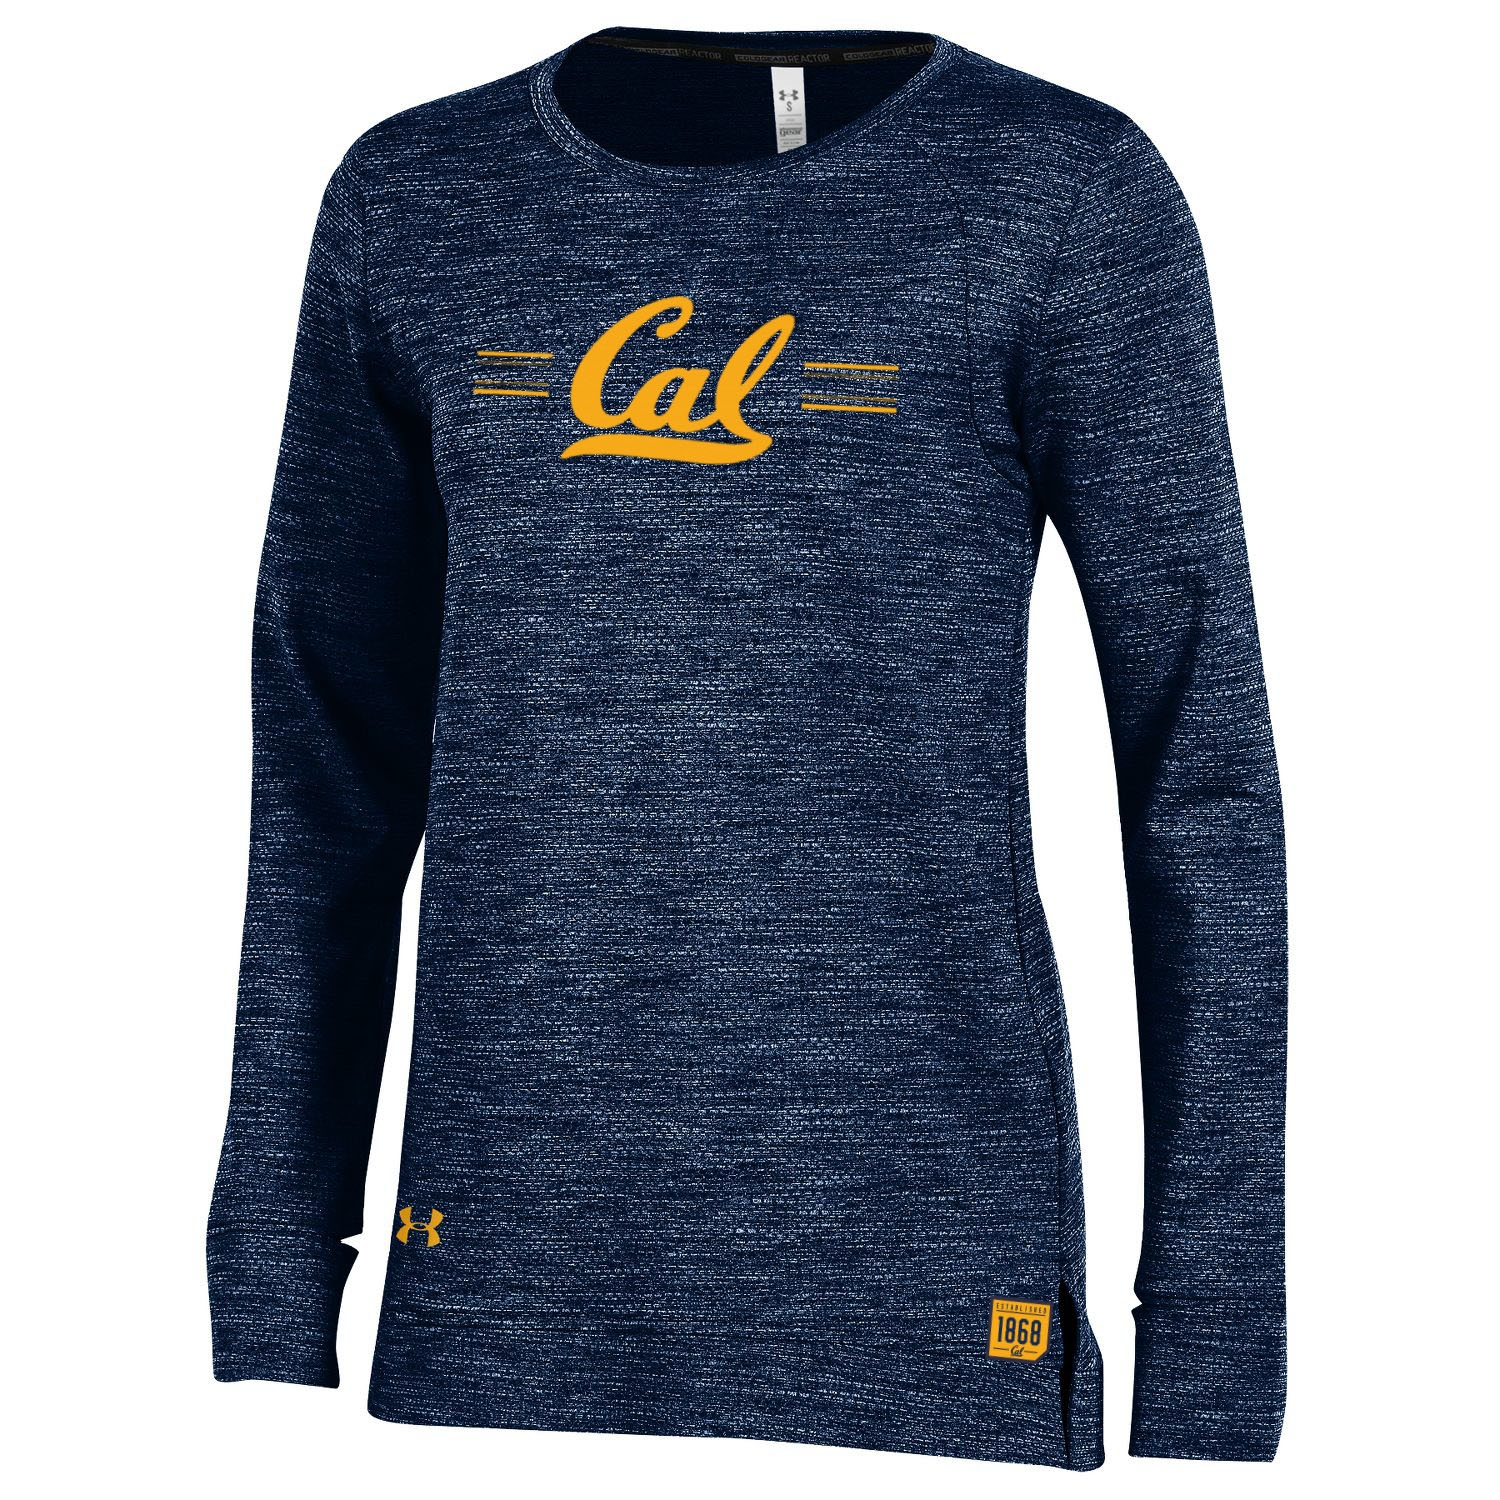 University of California Berkeley Under Armour Women's Reactor Long Sleeve Crew